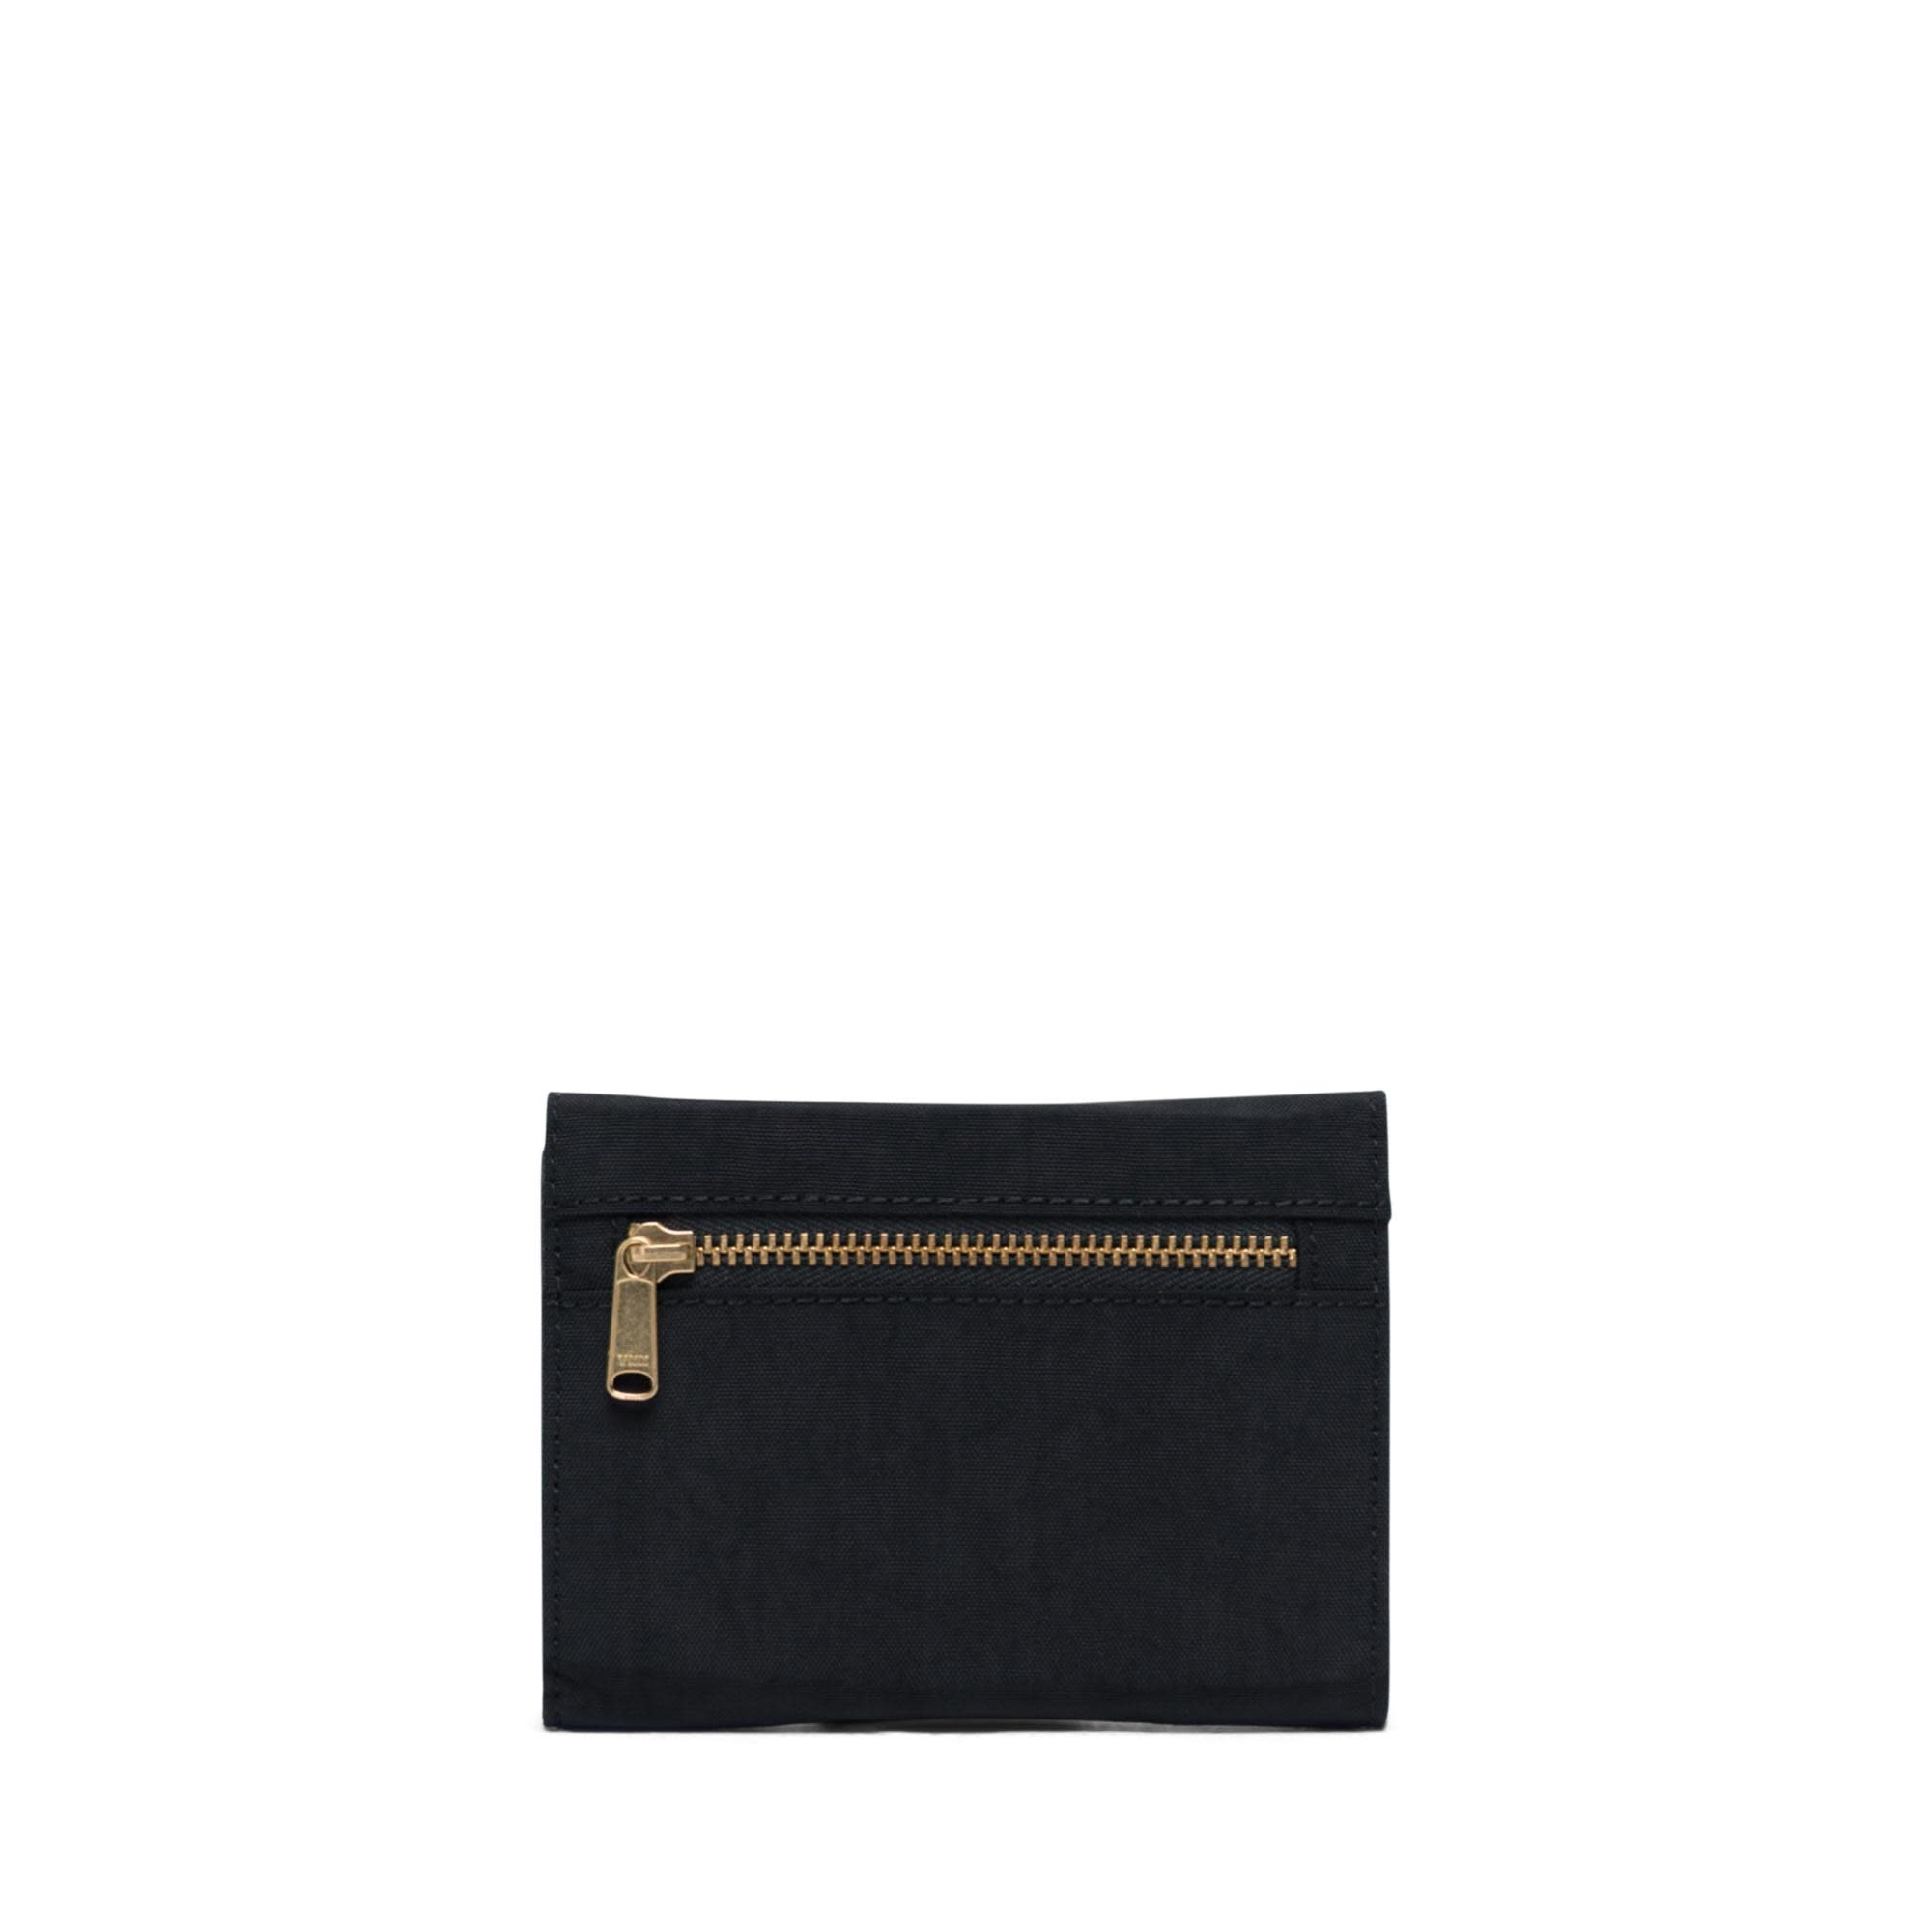 Herschel Supply Co. Herschel Orion Wallet - Nylon/Leather Black